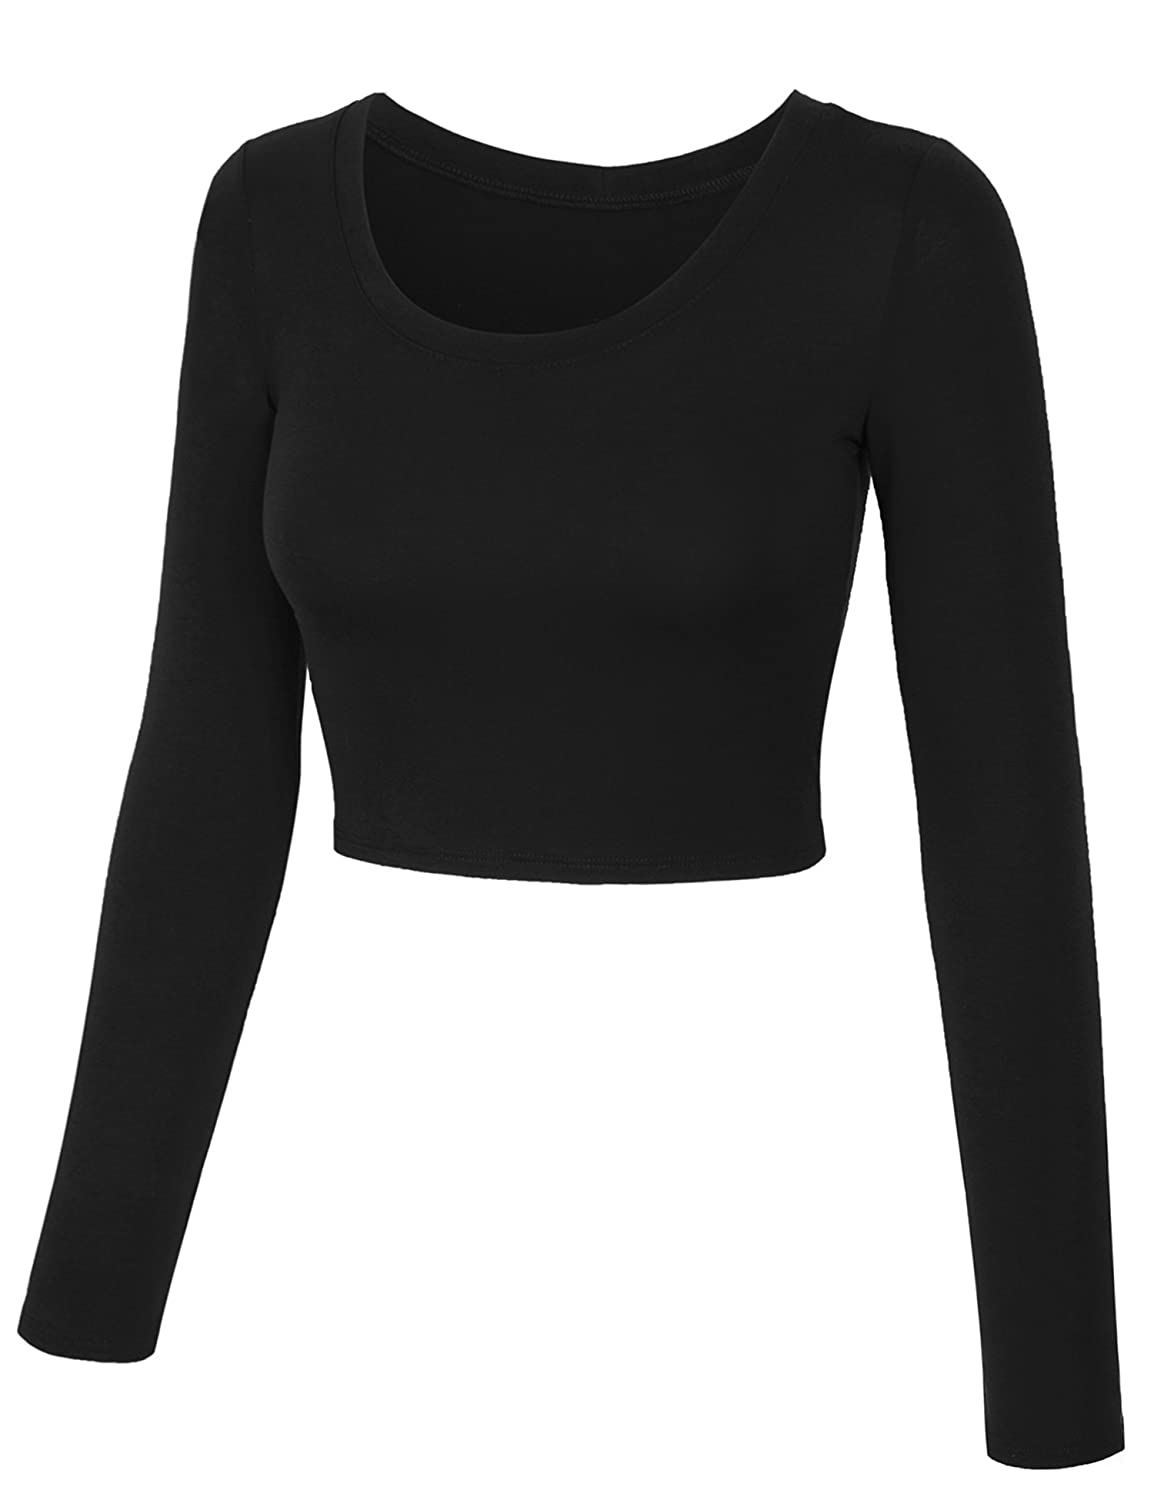 ff72c19f060 KOGMO Womens Long Sleeve Basic Crop Top Round Neck with Stretch at Amazon  Women's Clothing store: